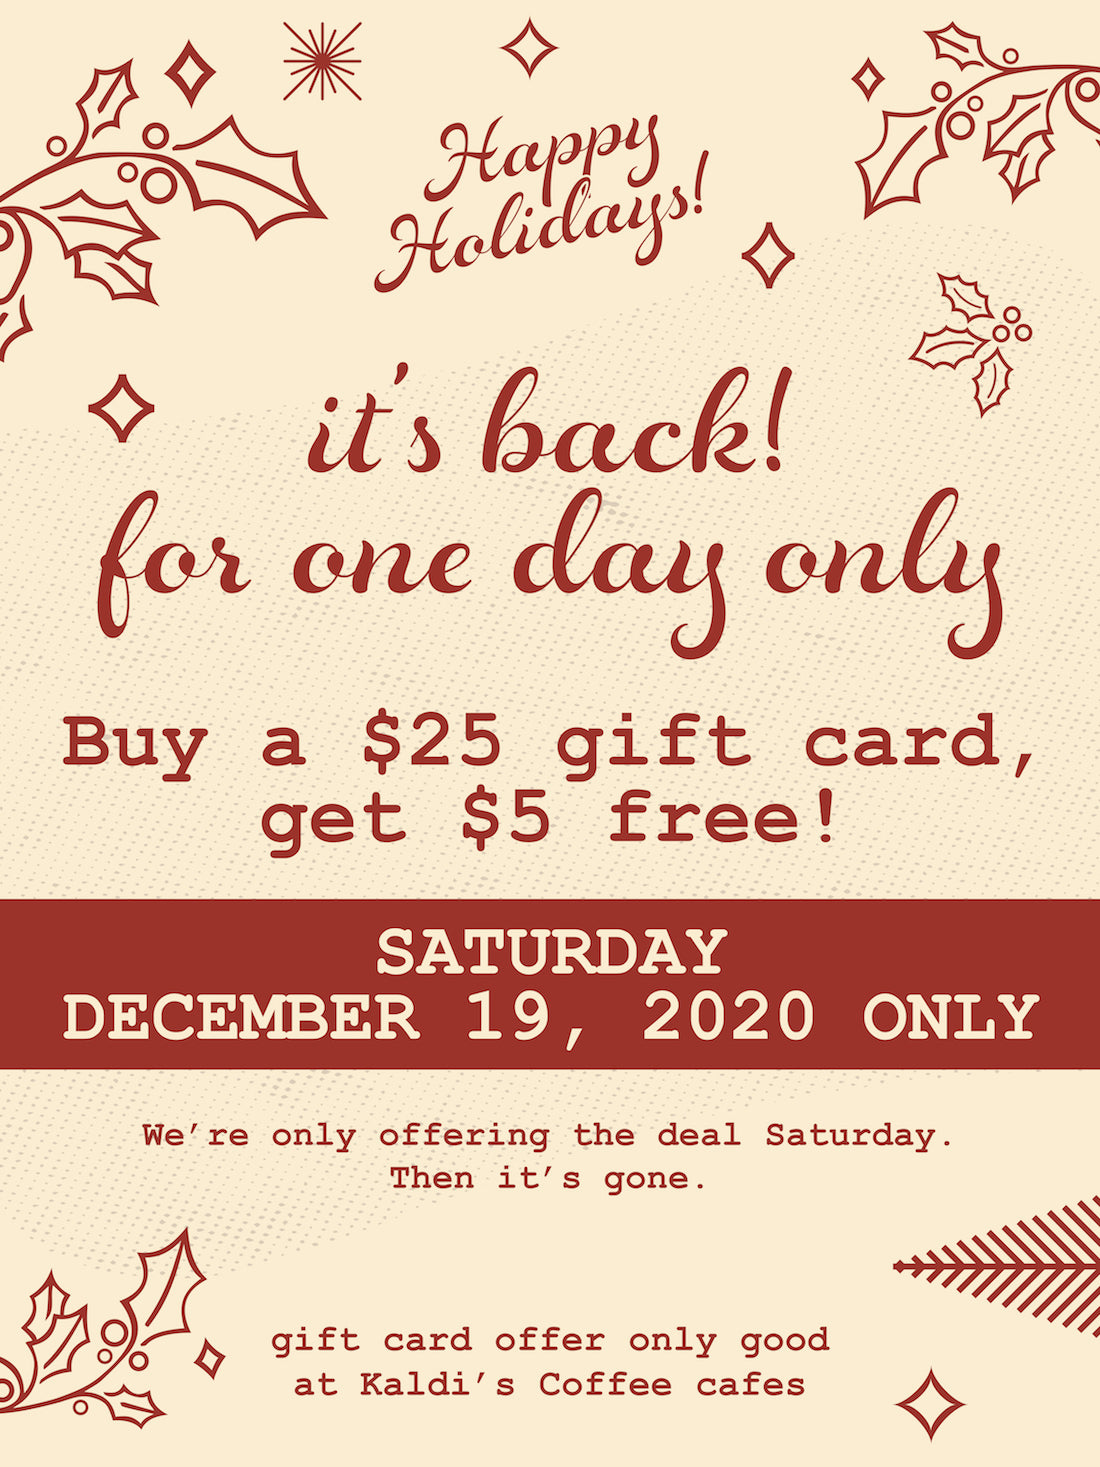 Buy a $25 Gift Card, Get $5 free at select cafes on 12/19/2020.